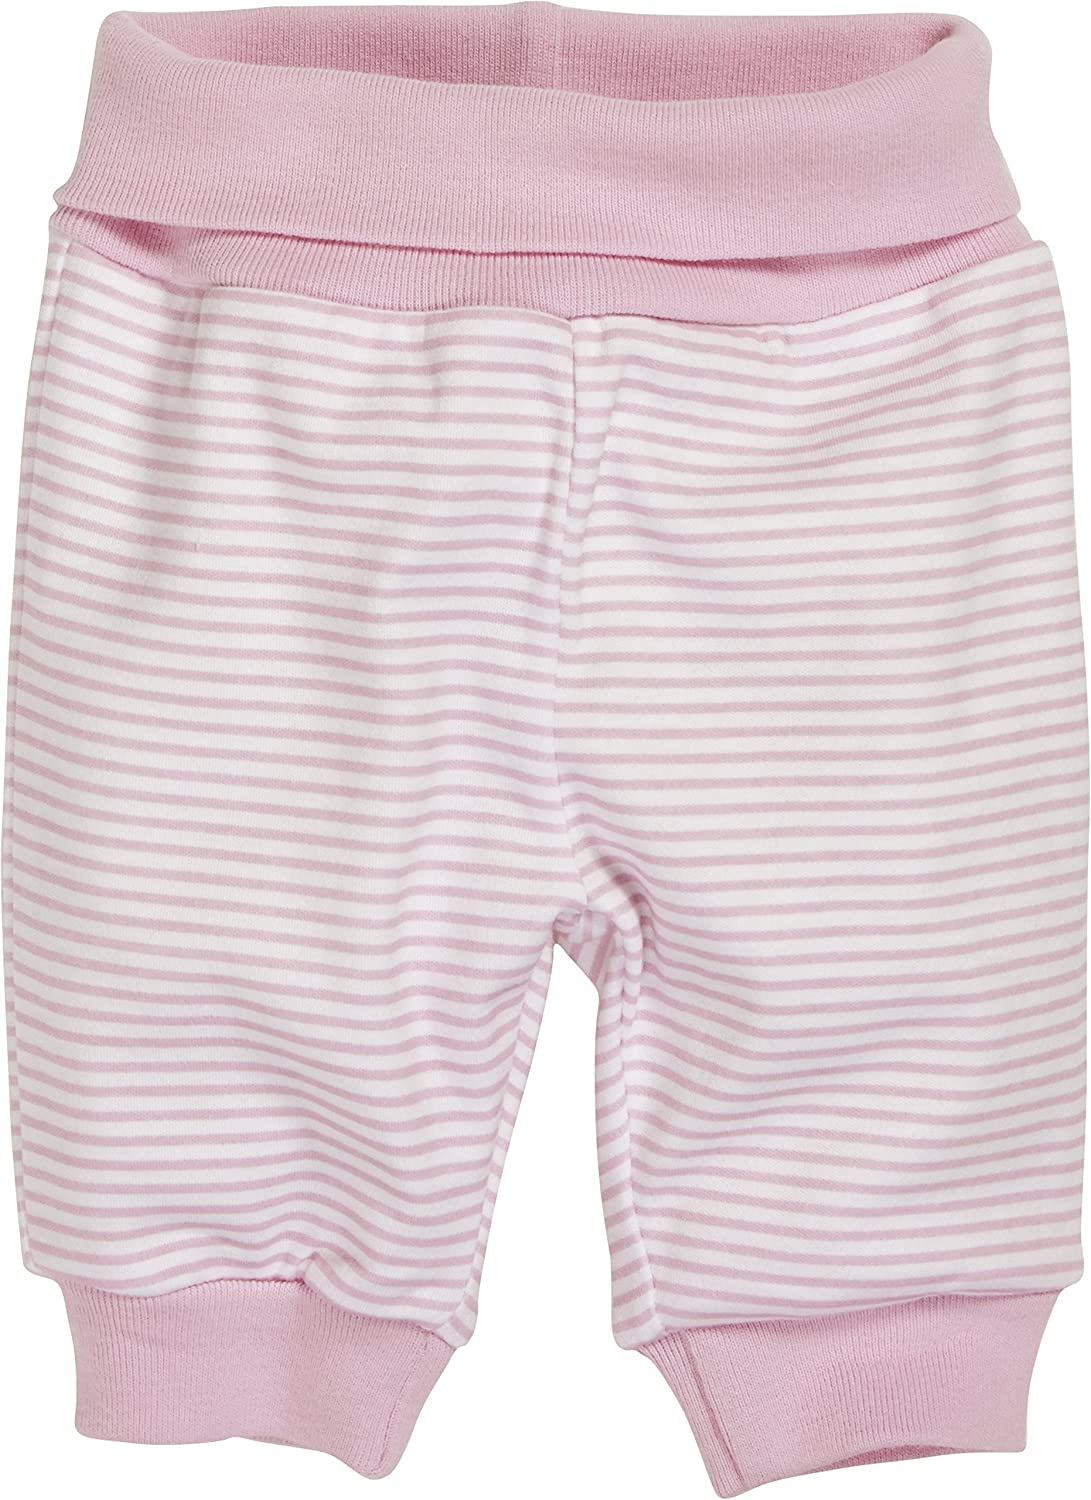 Schnizler Baby Cotton Striped Tracksuit Bottoms Trouser 800911